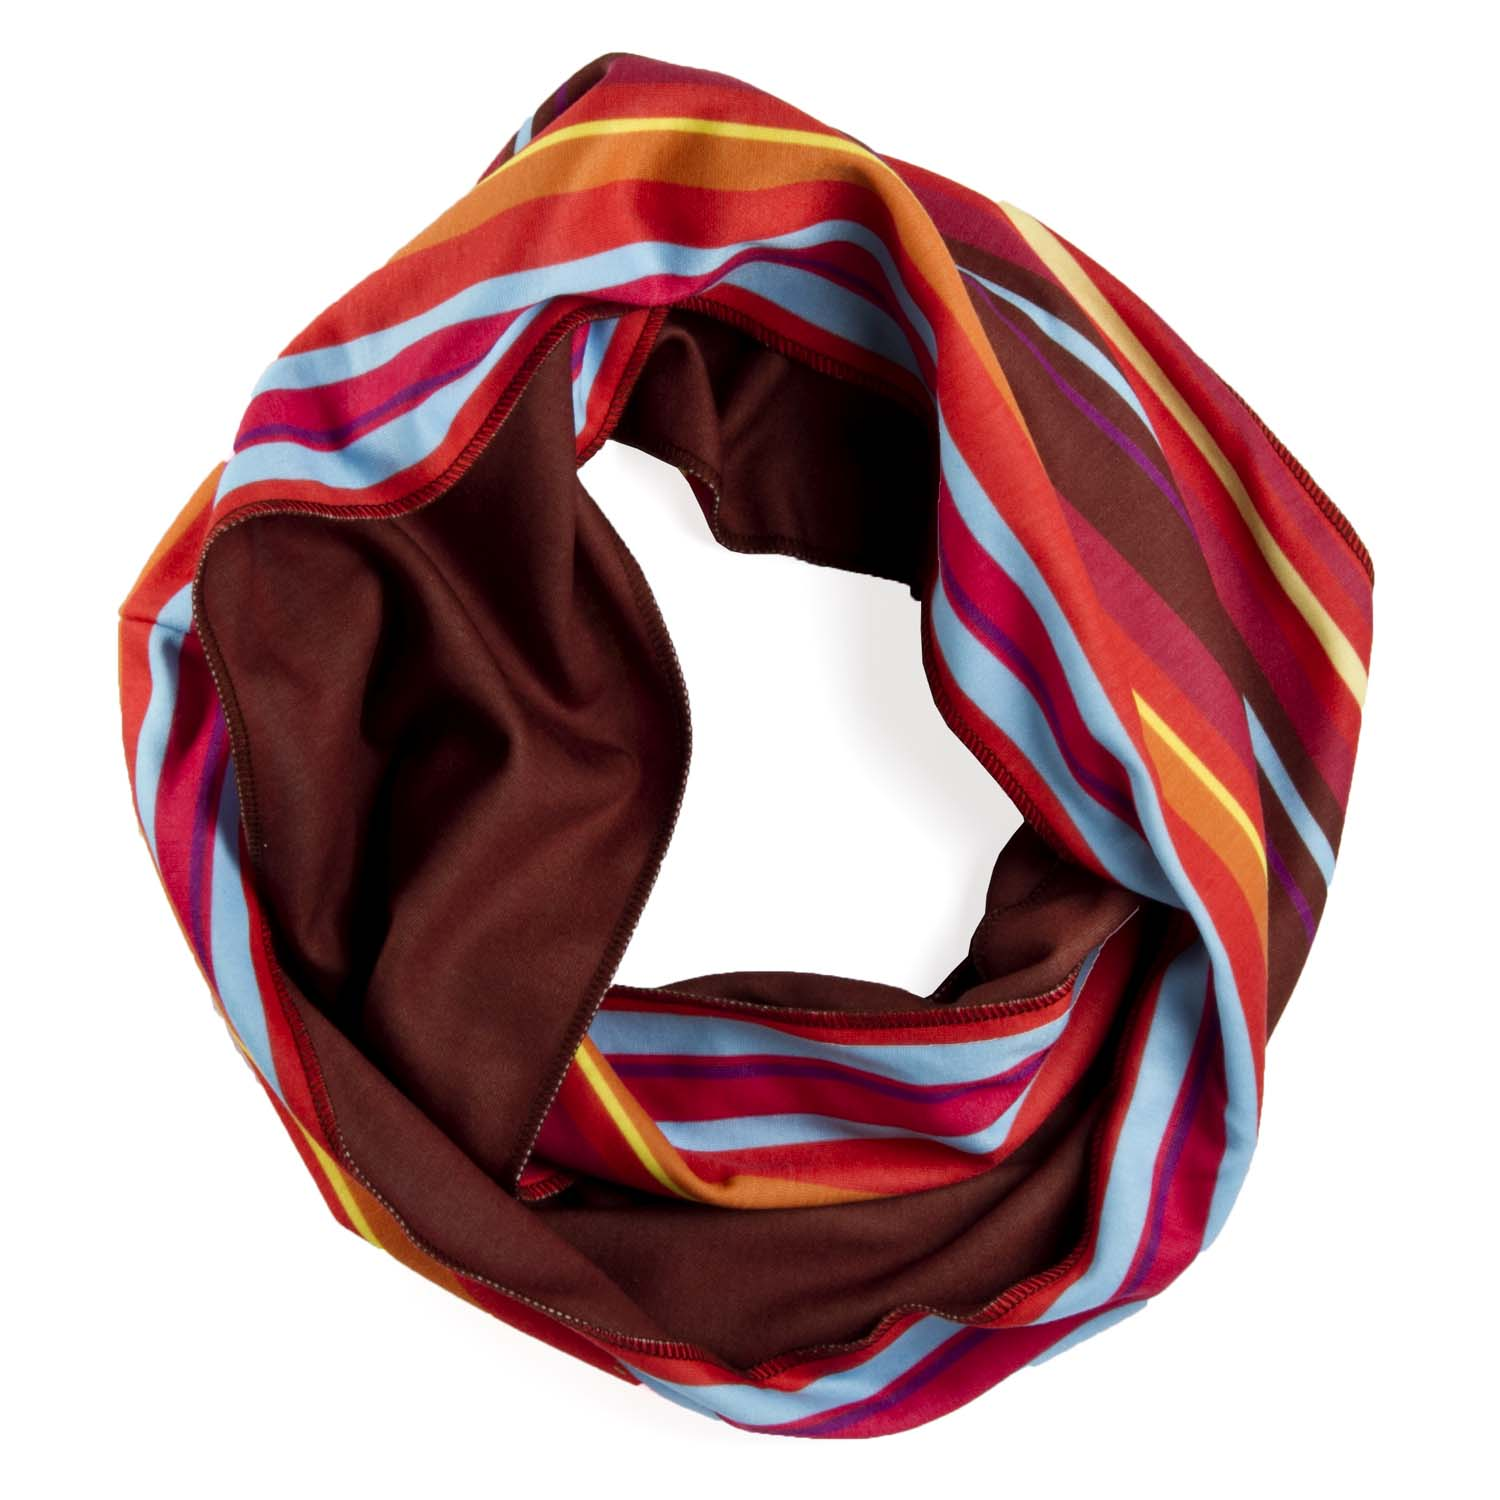 An infinity scarf provides versatility in both fashion and function. When worn closely to the neck, this yarn provides warmth, and the more loops around the neck, the warmer it will become. An Infinity scarf can be worn in a variety of ways.